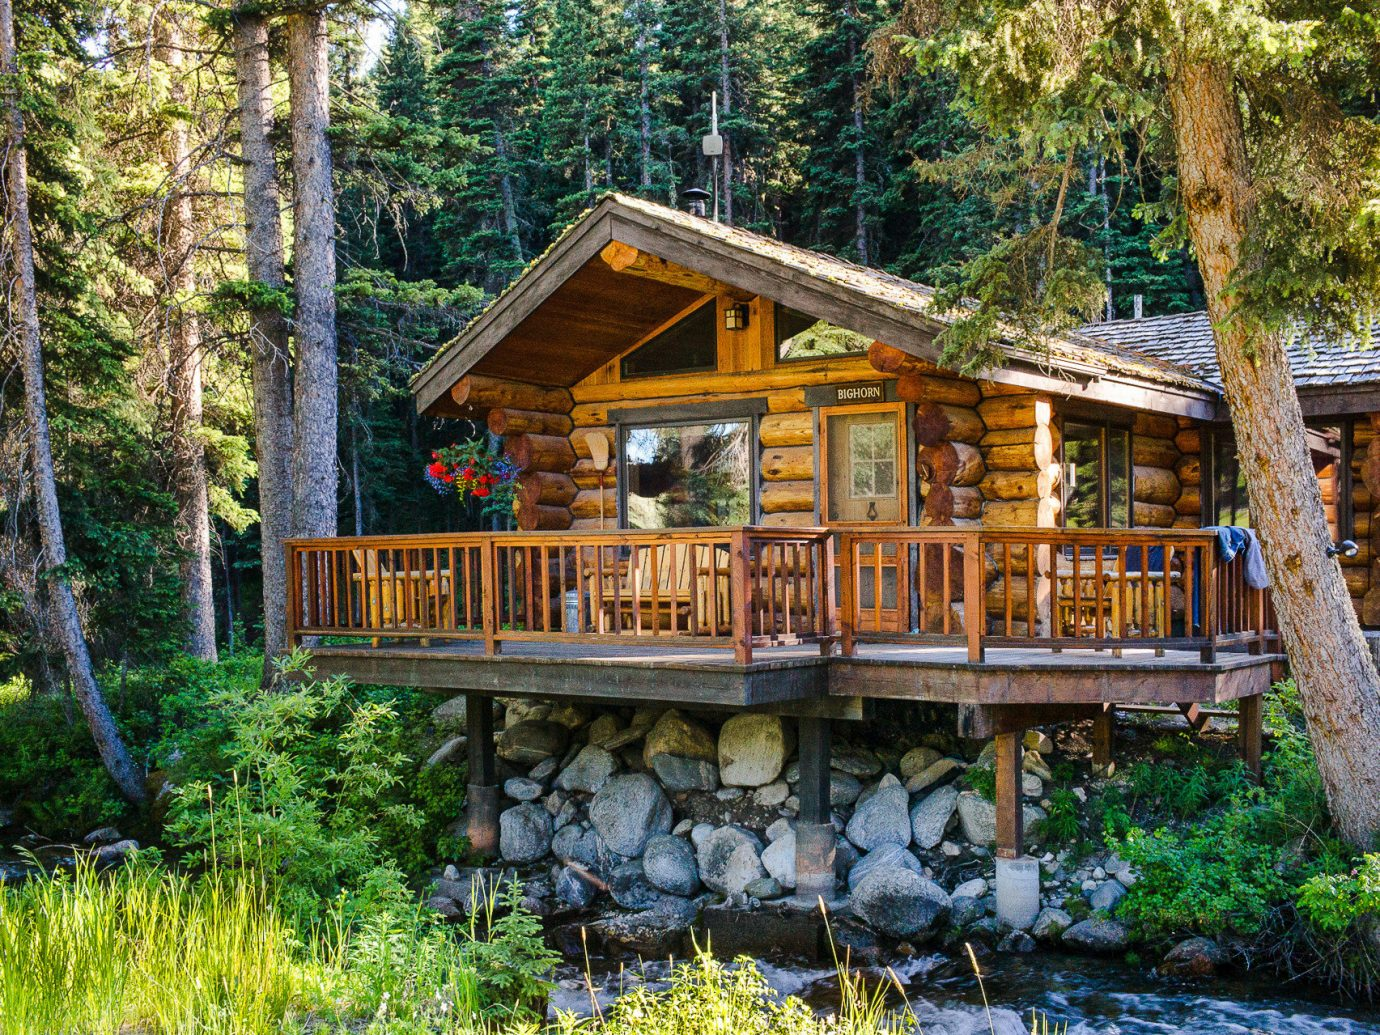 Glamping Hotels Montana Outdoors + Adventure Trip Ideas cottage log cabin home property tree wilderness plant house real estate outdoor structure landscape hut wood woodland old growth forest estate bayou shack